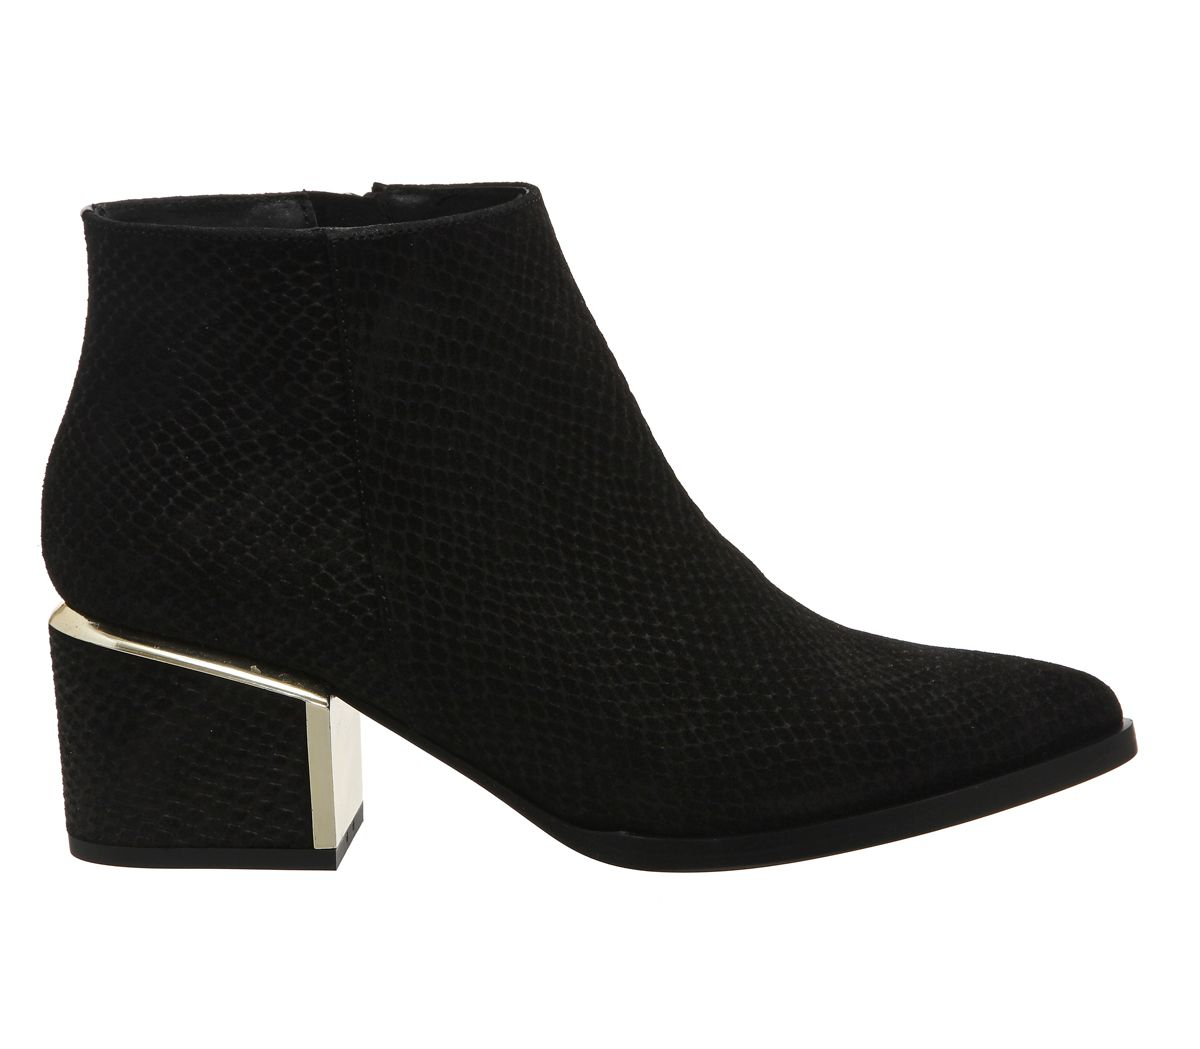 Office Immortal Metal Heeled Boots in Black